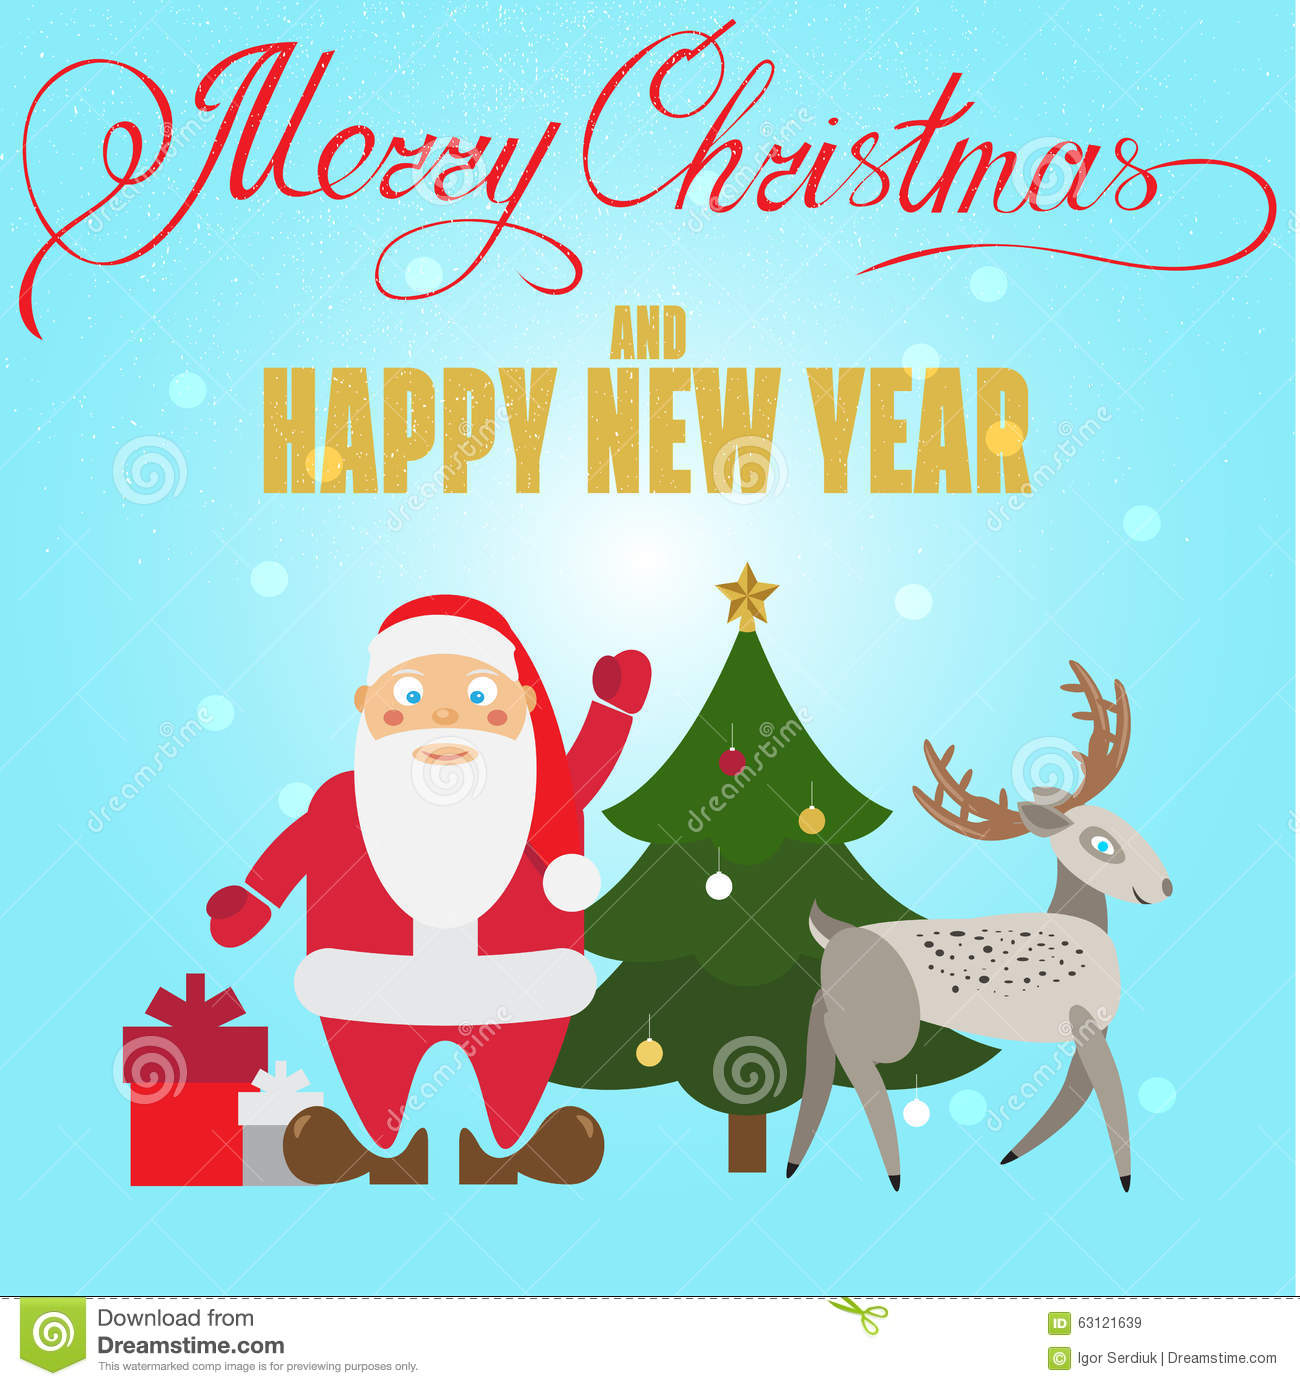 Xmas poster design - Christmas Poster Design With Santa Claus Deer Christmas Tree